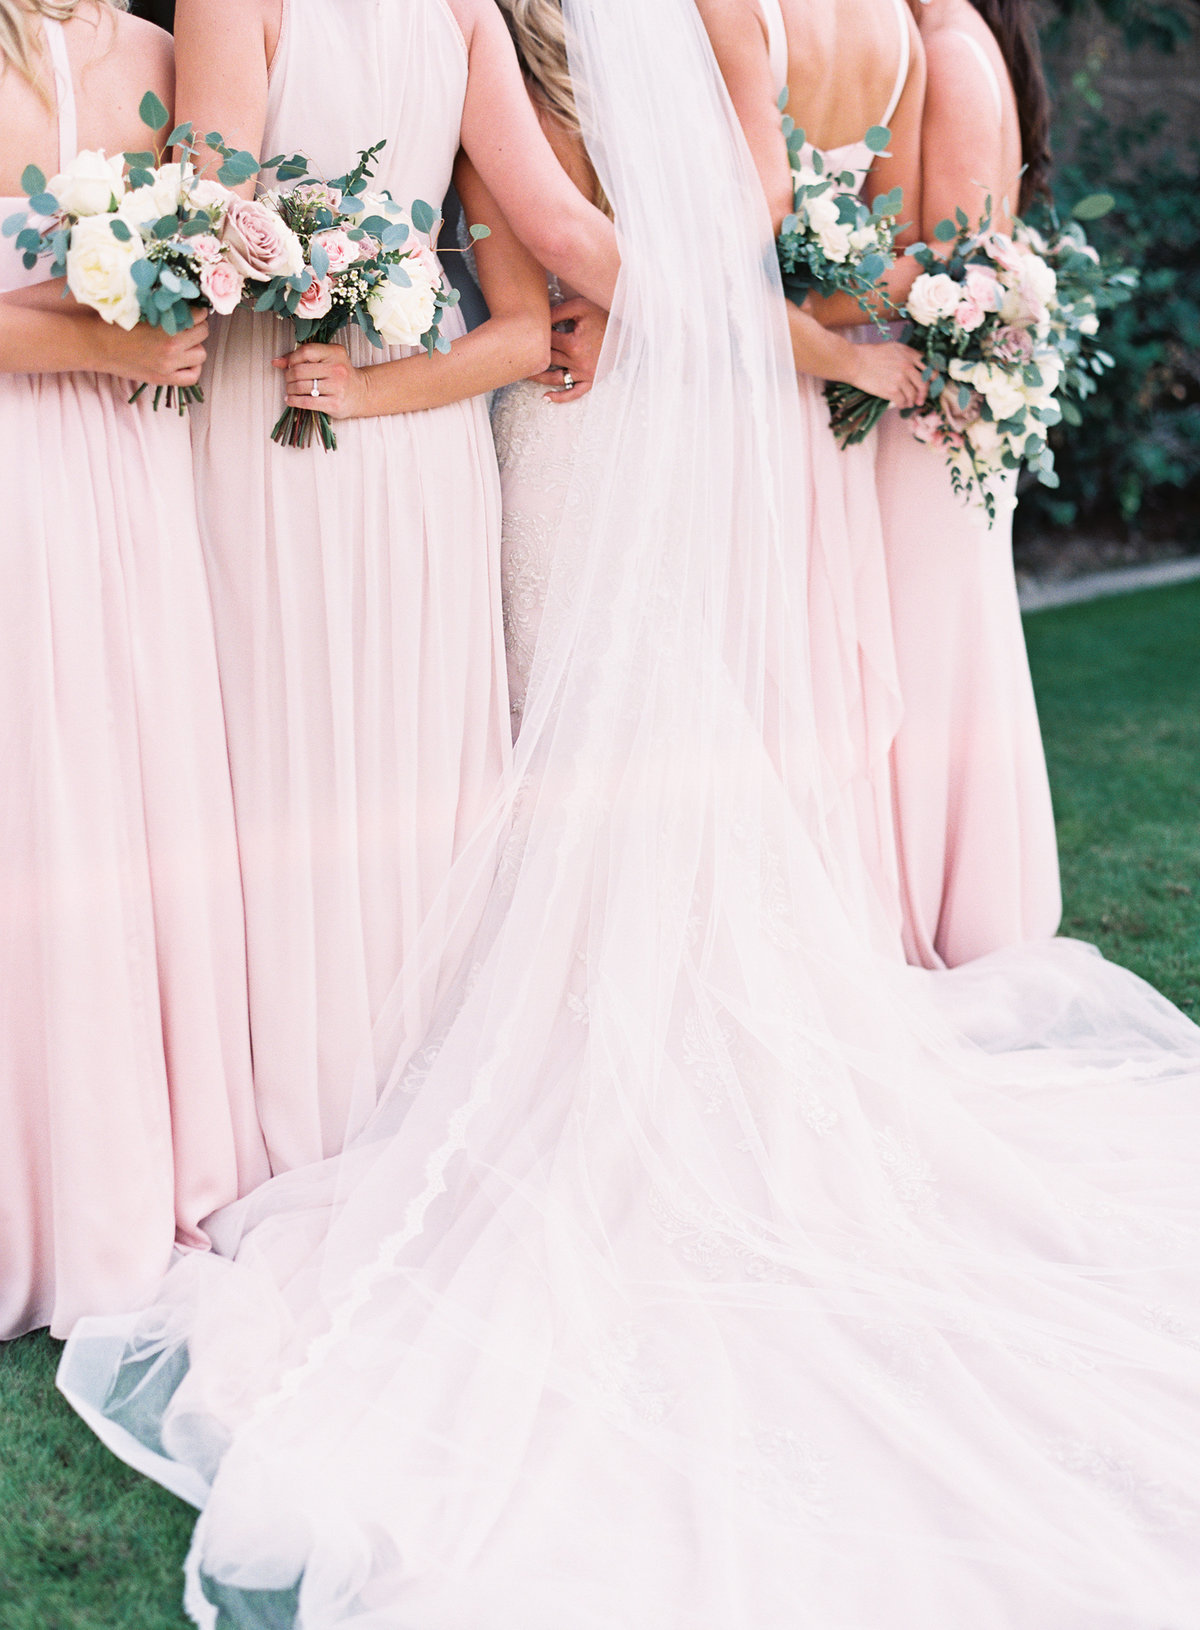 Arizona Biltmore Wedding - Mary Claire Photography-30